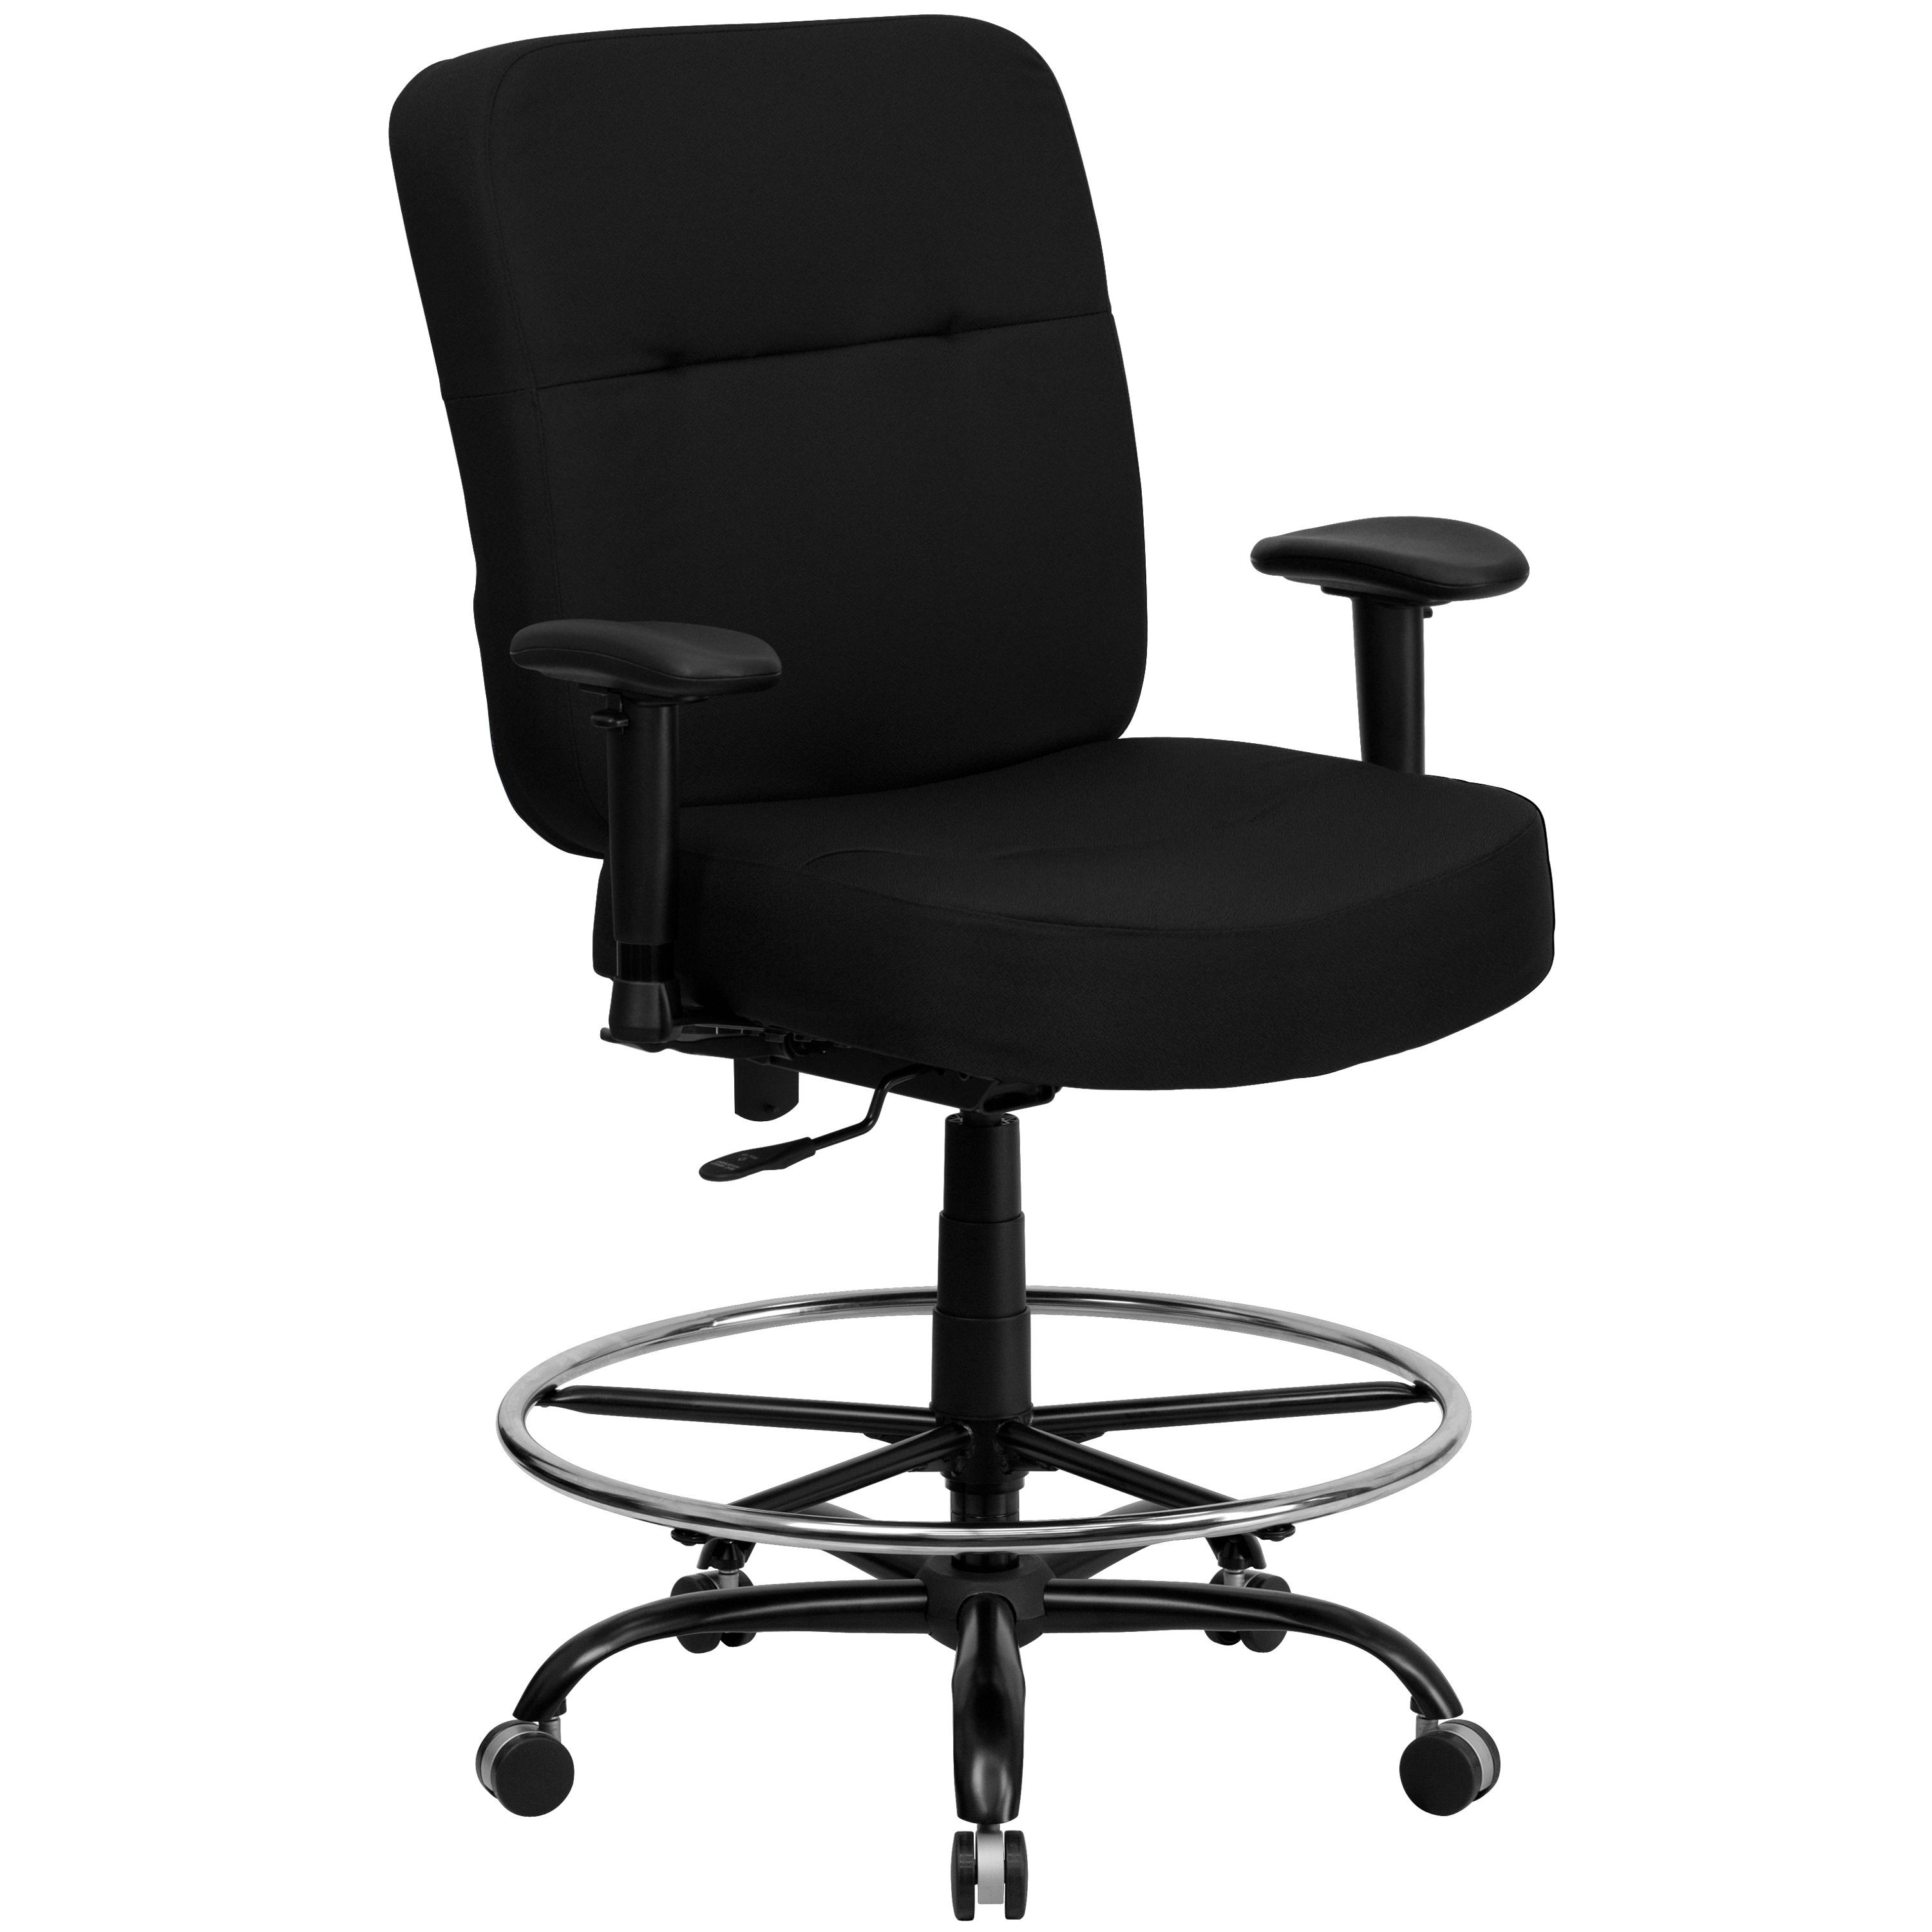 Flash Furniture WL-735SYG-BK-AD-GG HERCULES Series Big & Tall Black Fabric Drafting Stool with Extra Wide Seat and Arms, 400 Lb. Capacity